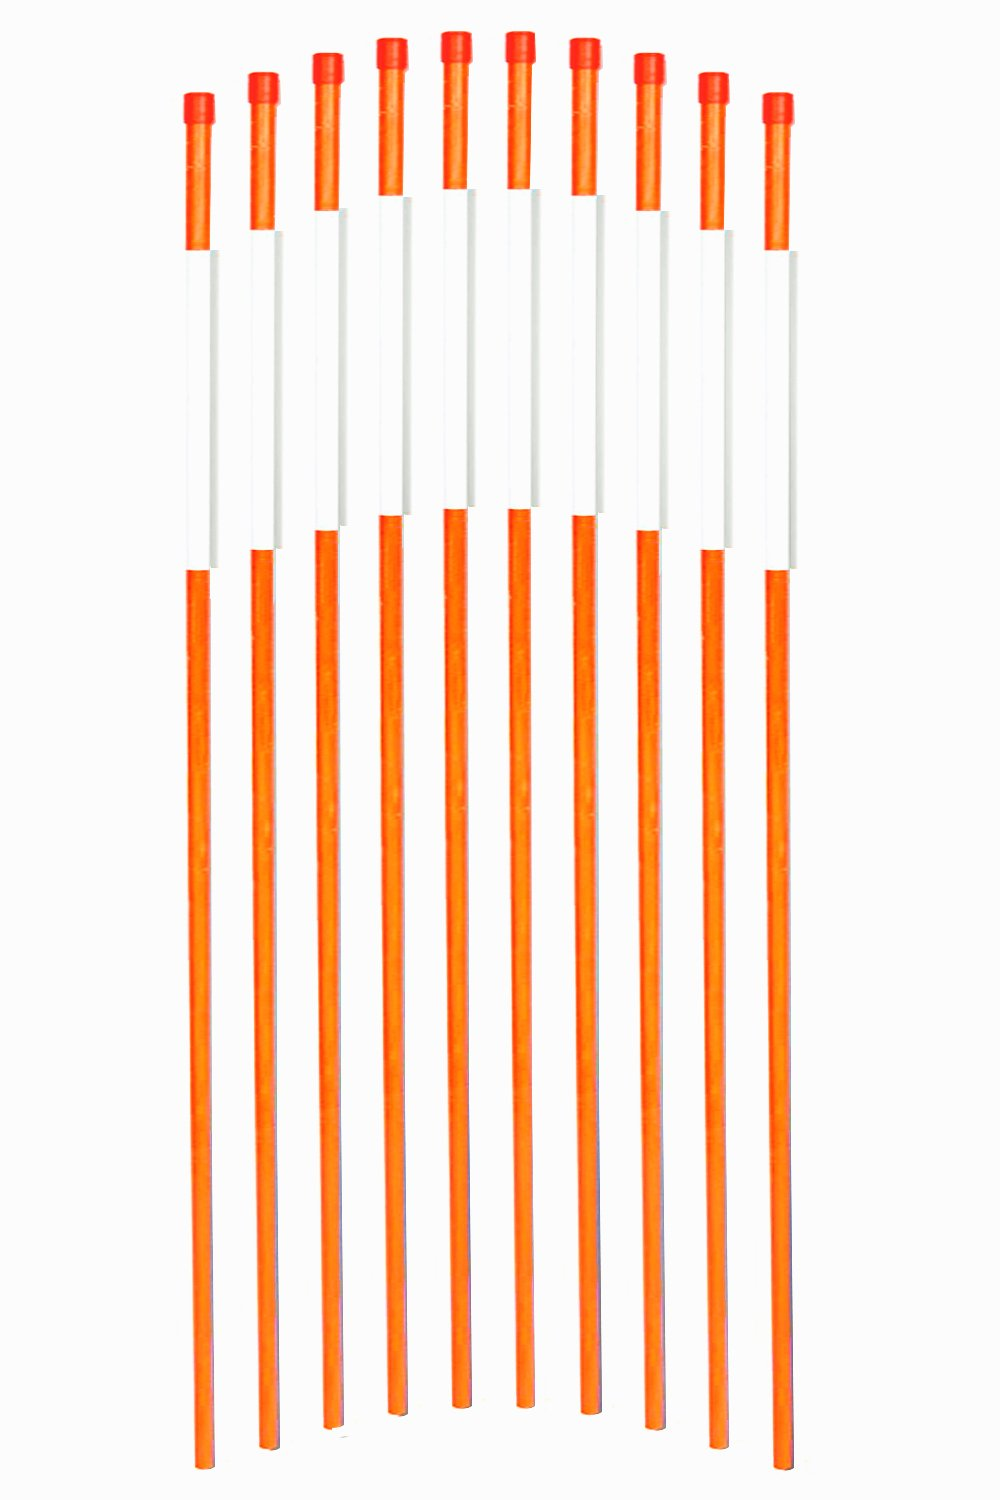 FiberMarker Solid Reflective Driveway Markers 48-Inch Orange 100-Pack 5/16-Inch Dia Driveway Poles for Easy Visibility at Night